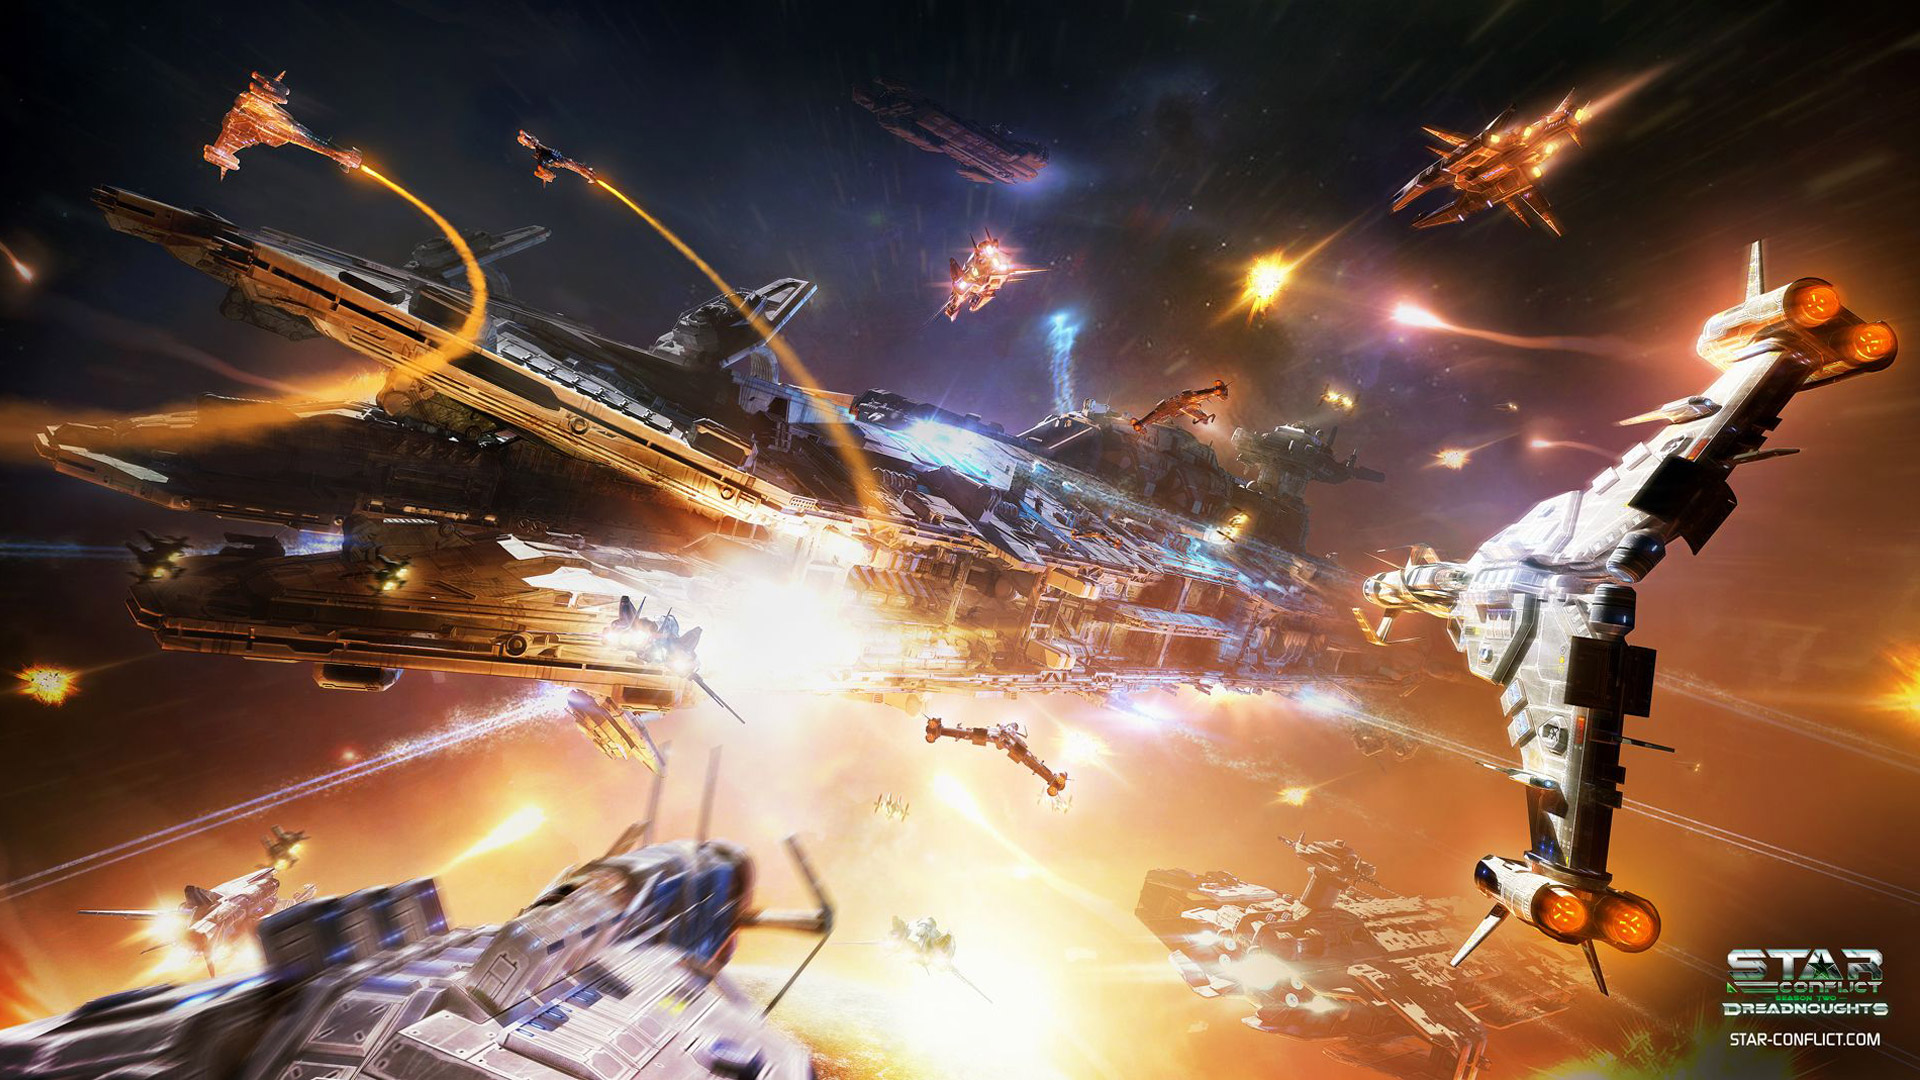 Free Star Conflict Wallpaper in 1920x1080